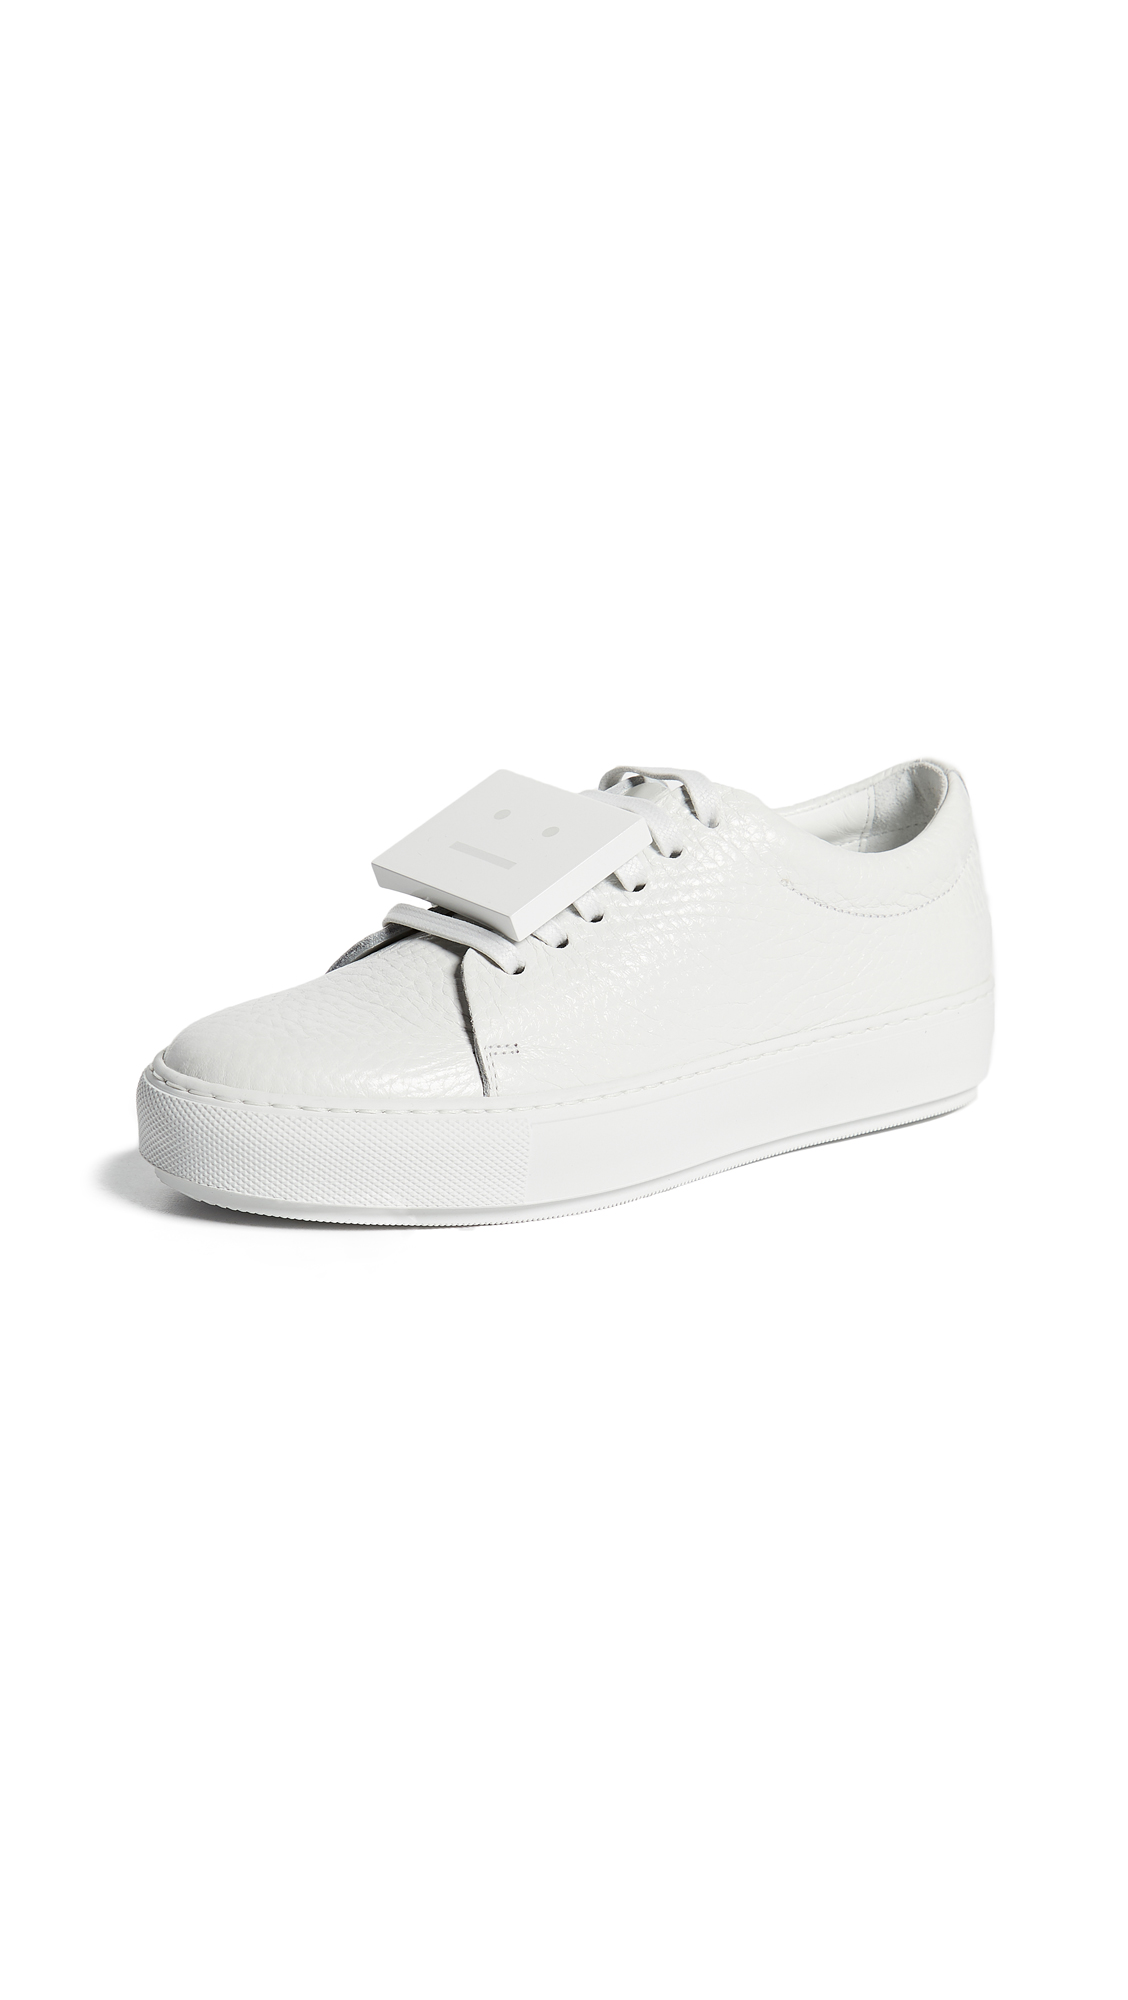 Acne Studios Adriana Grain Sneakers - White